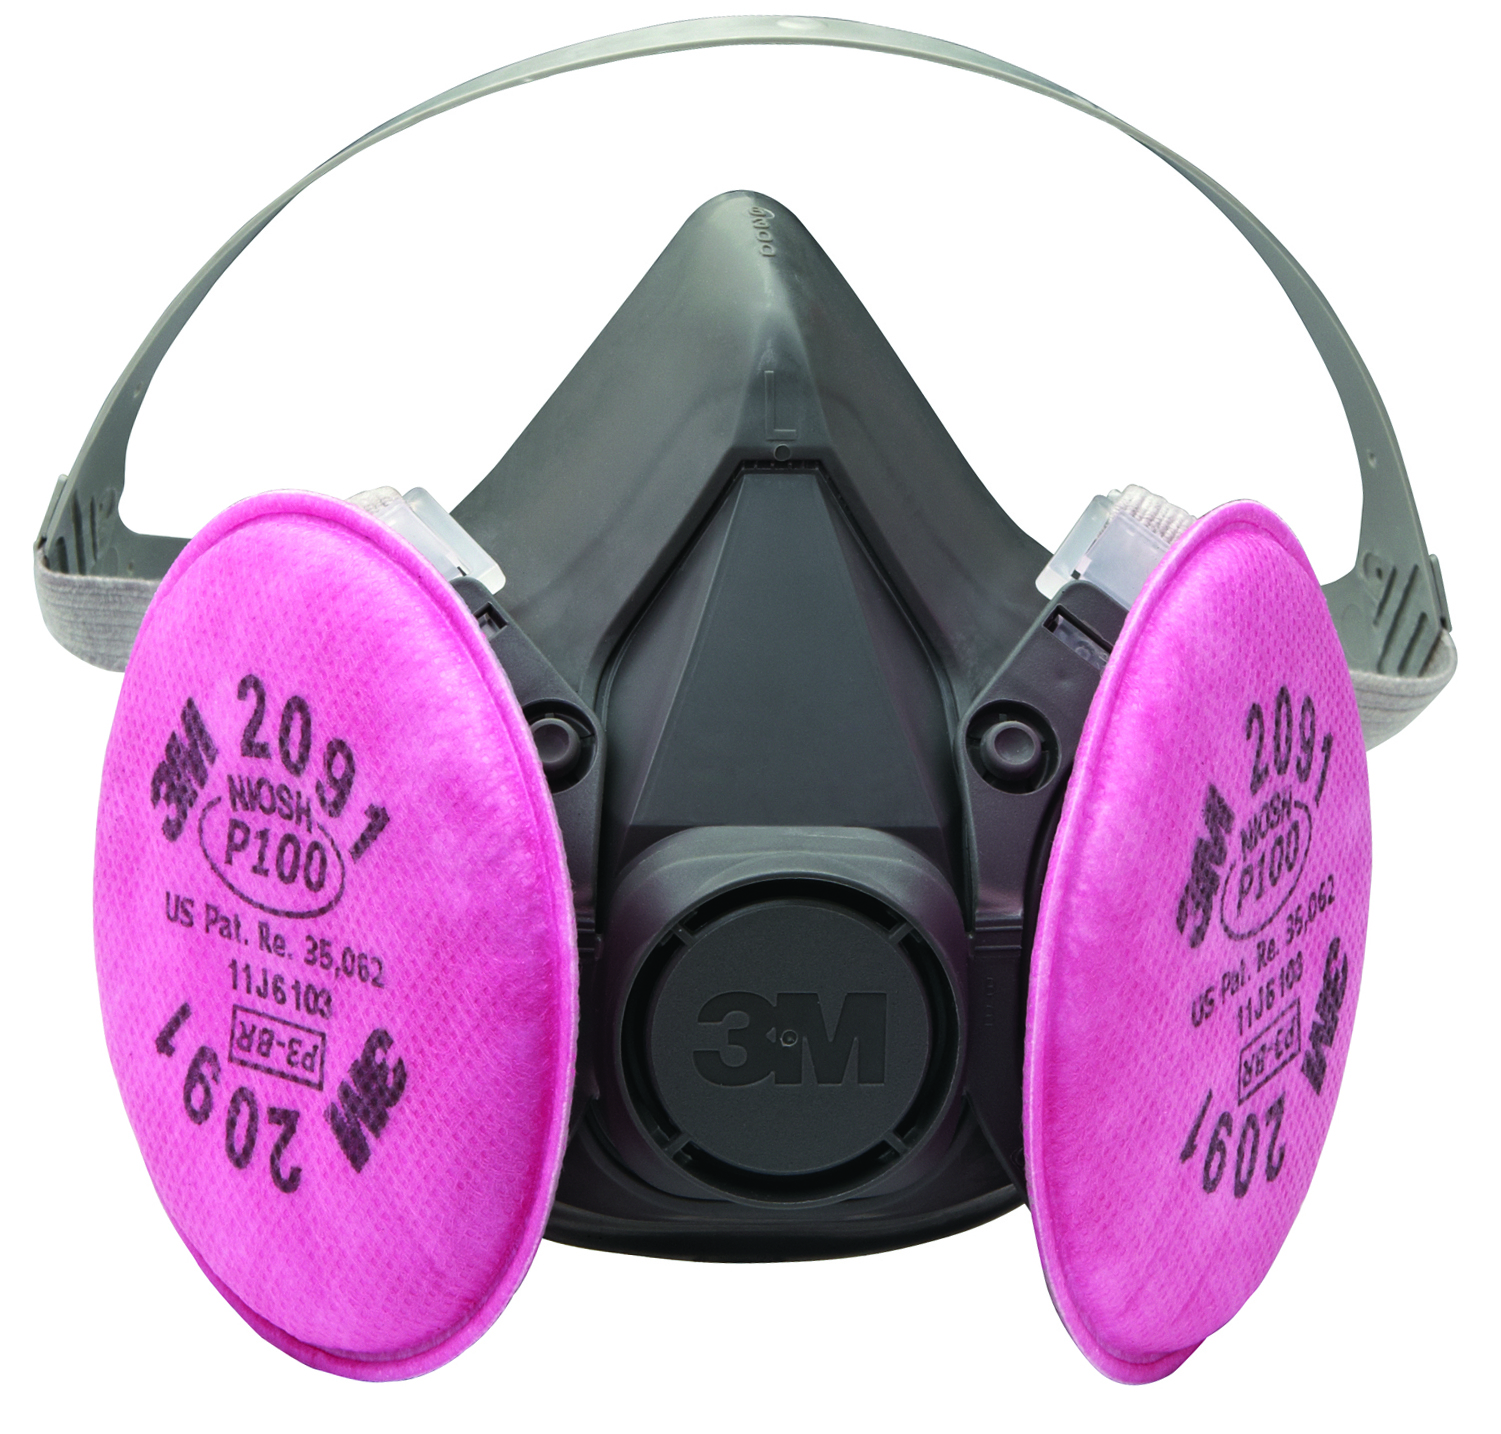 6503 - 3M Rugged Comfort Half Facepiece Respirators 6500 Series-Rugged Comfort Half Facepiece Respirators, 6500 Series-Large----UOM: 1/EA